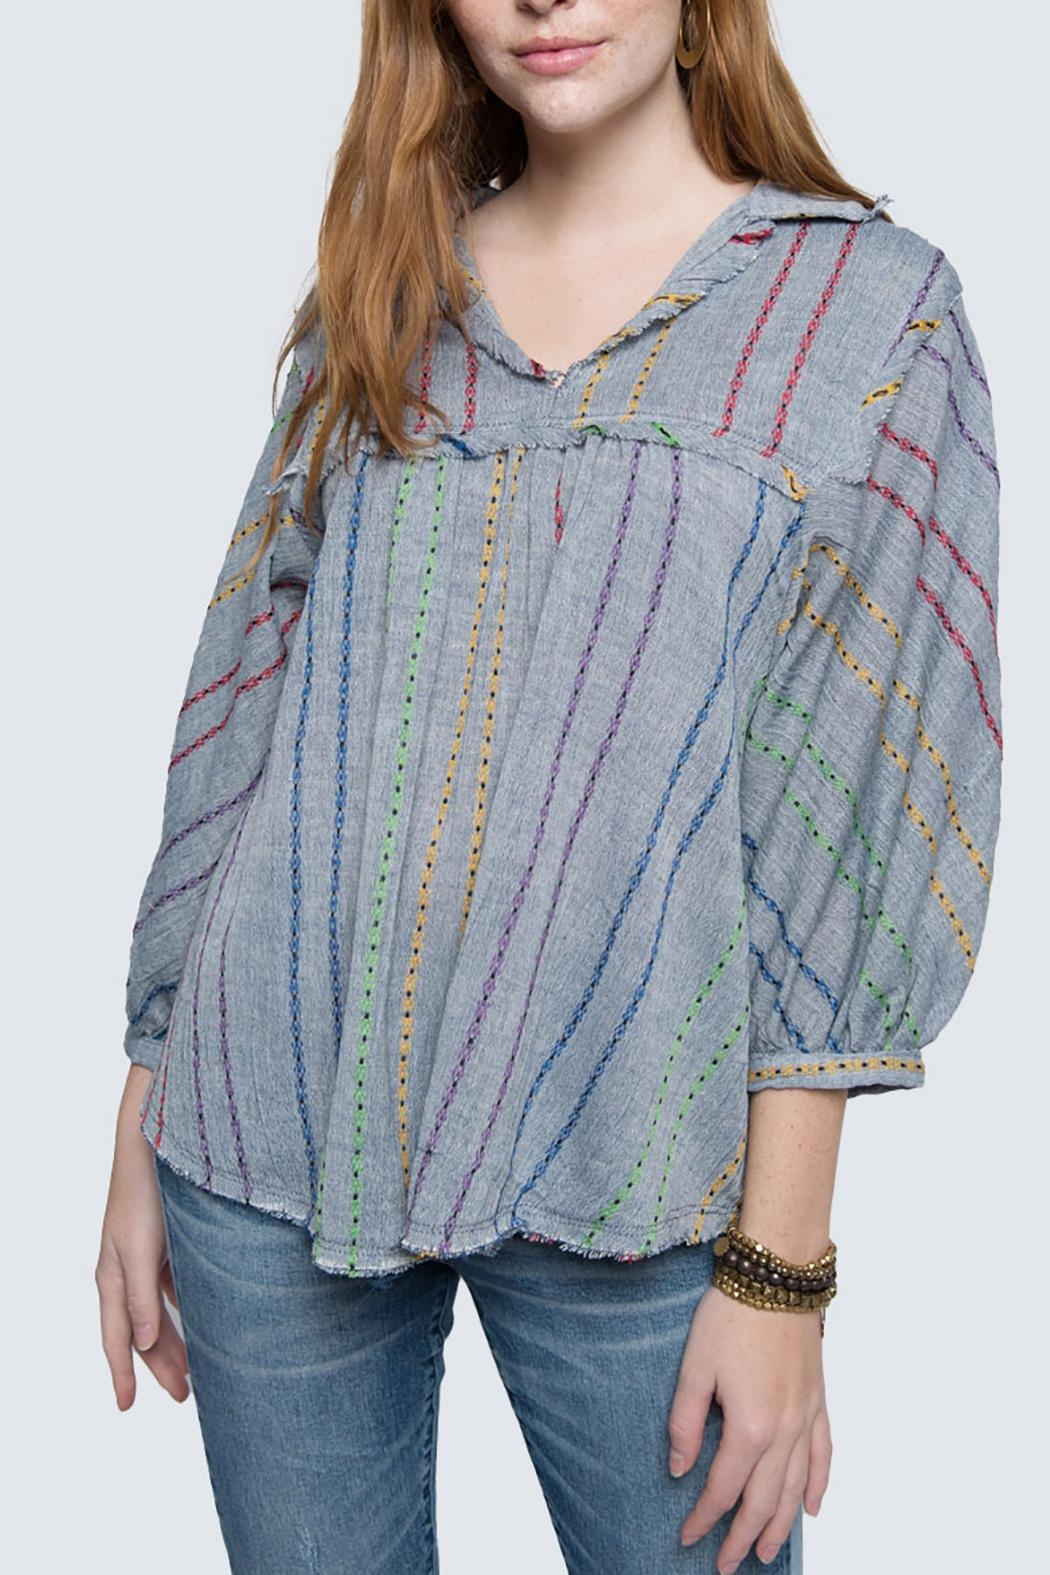 Ivy Jane Stripe Swing Fringy Top - Front Full Image